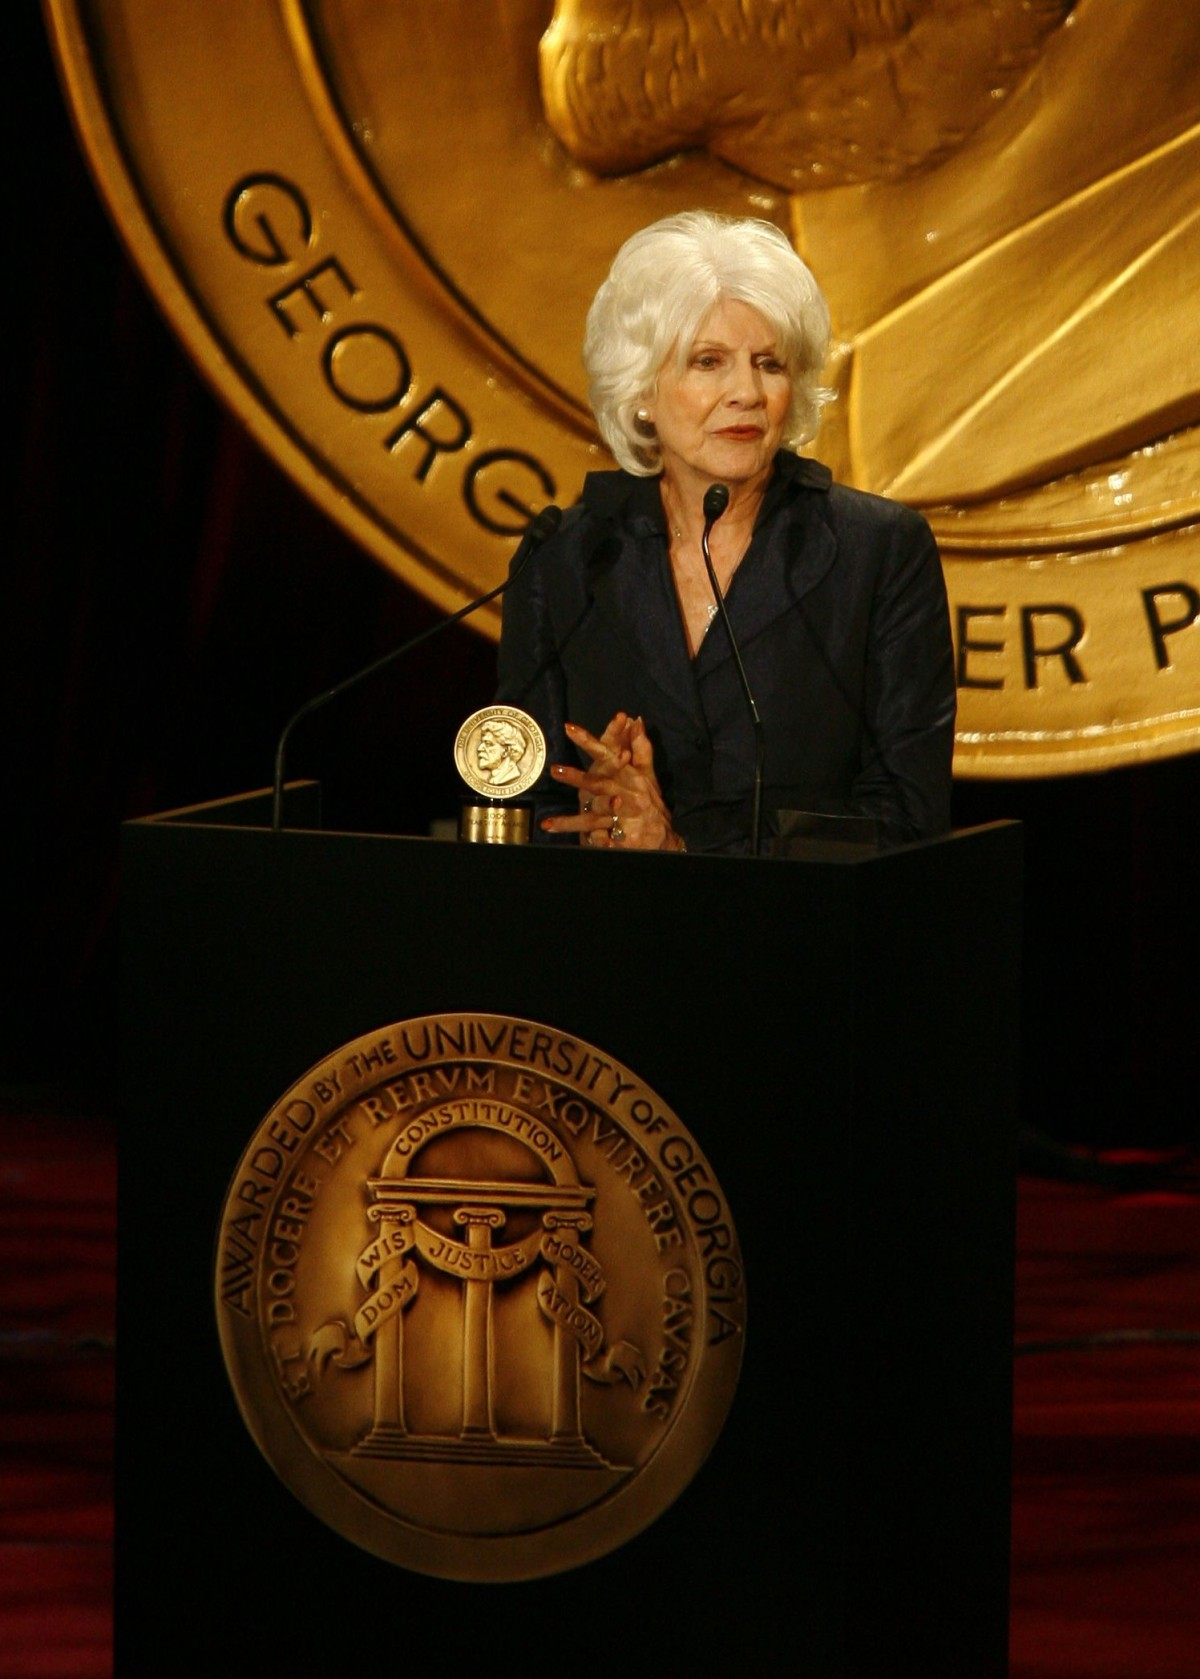 What we can learn from DianeRehm